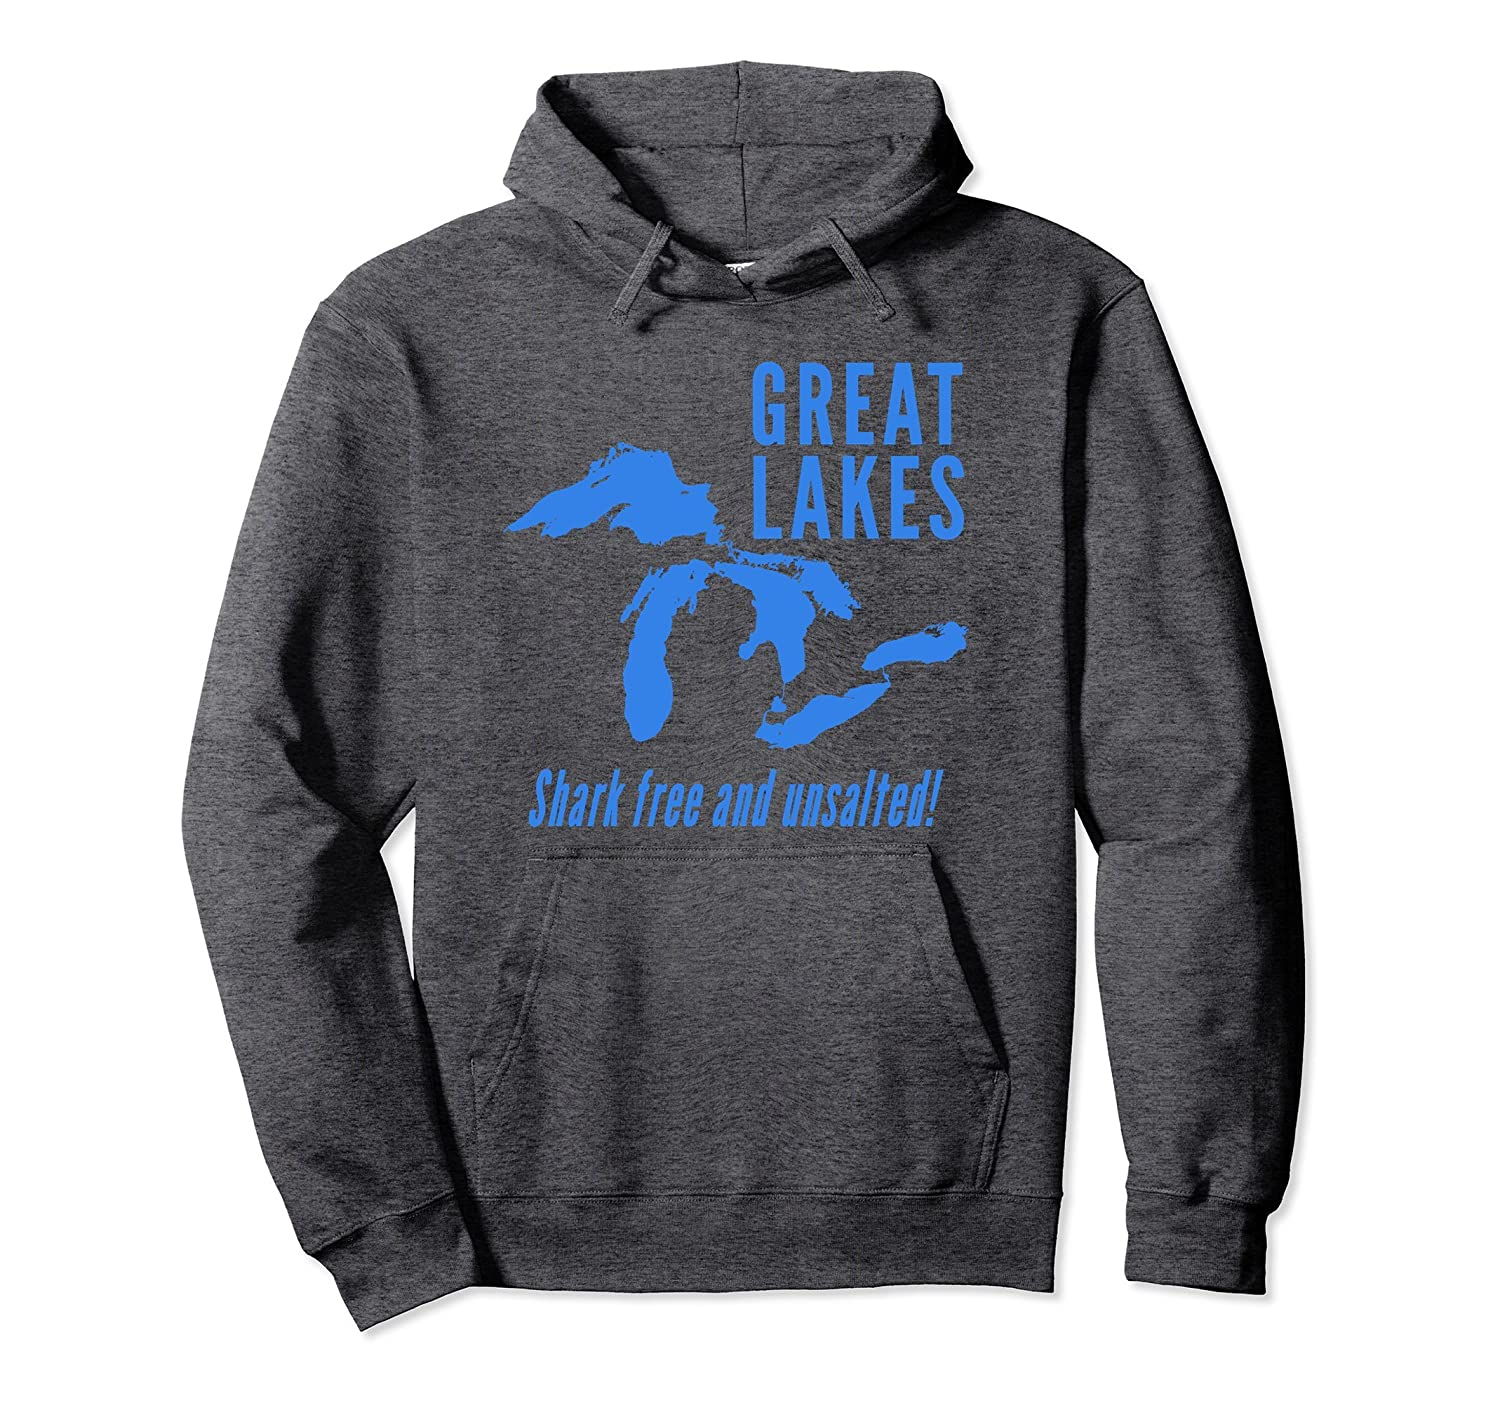 Great Lakes Shark free and unsalted Funny Hoodie Sweatshirt-Colonhue